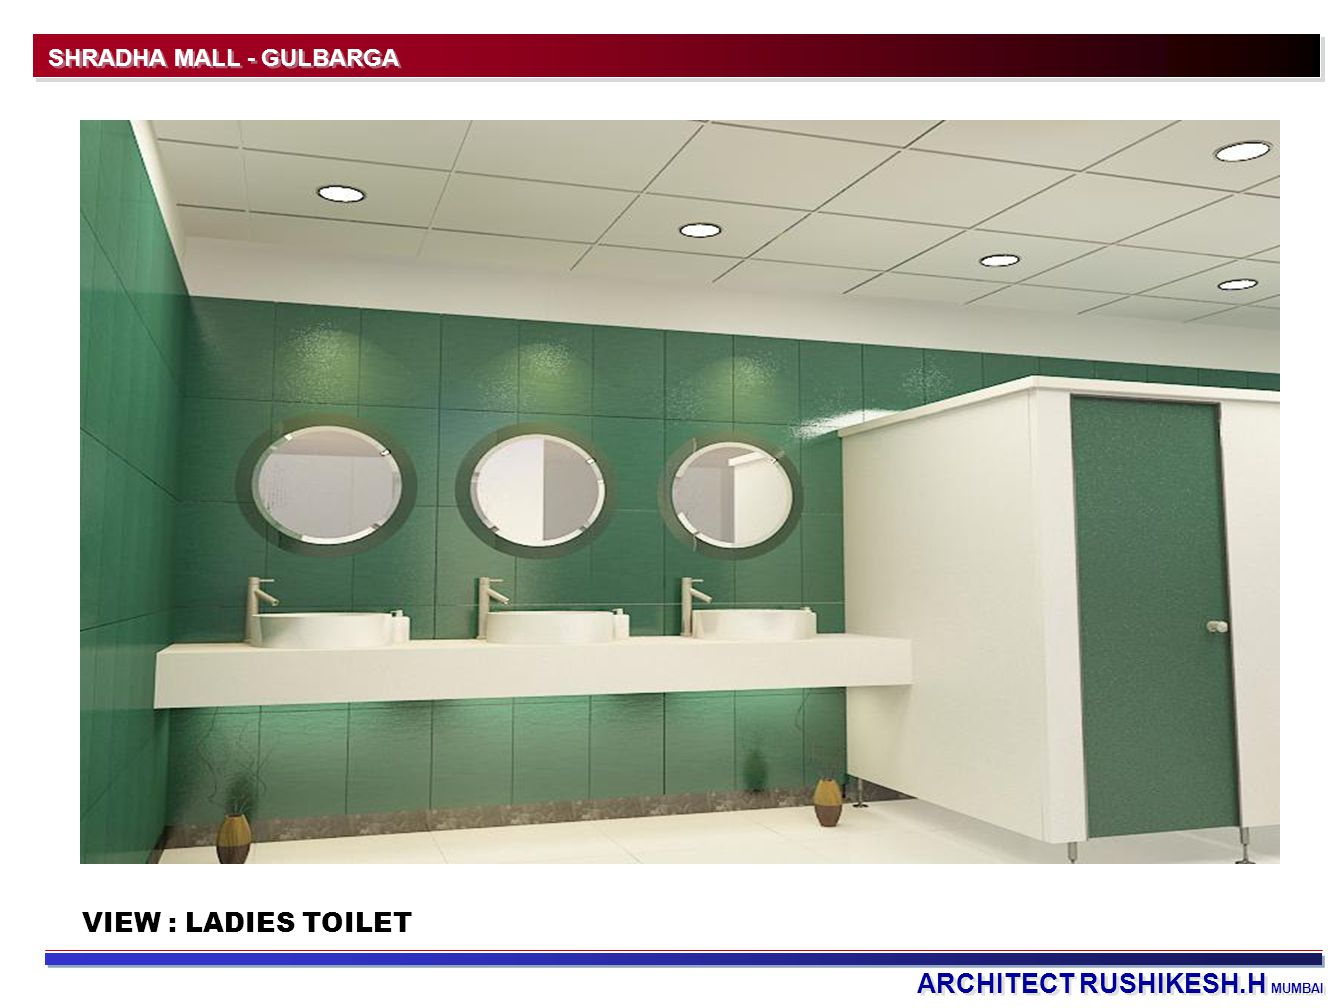 ARCHITECT RUSHIKESH.H MUMBAI SHRADHA MALL - GULBARGA VIEW : LADIES TOILET